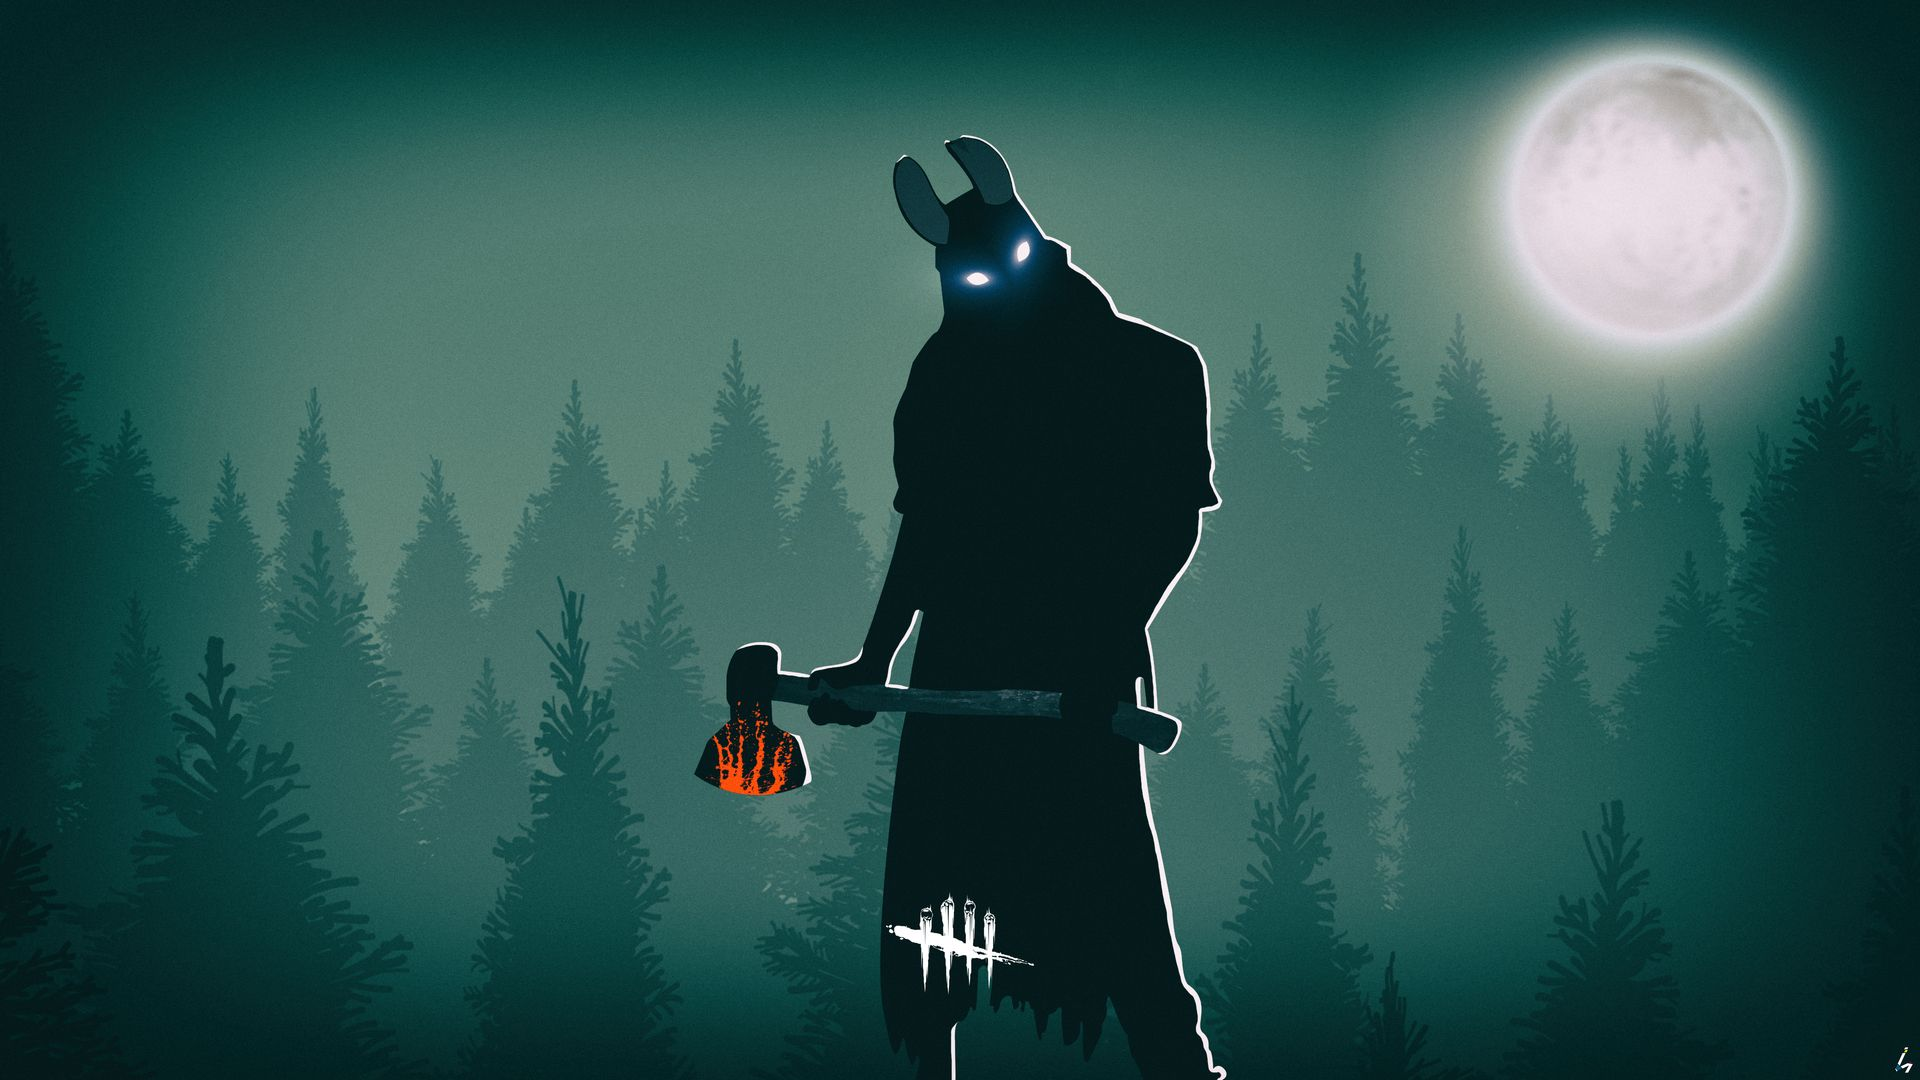 Dead By Daylight Wallpapers Top Free Dead By Daylight